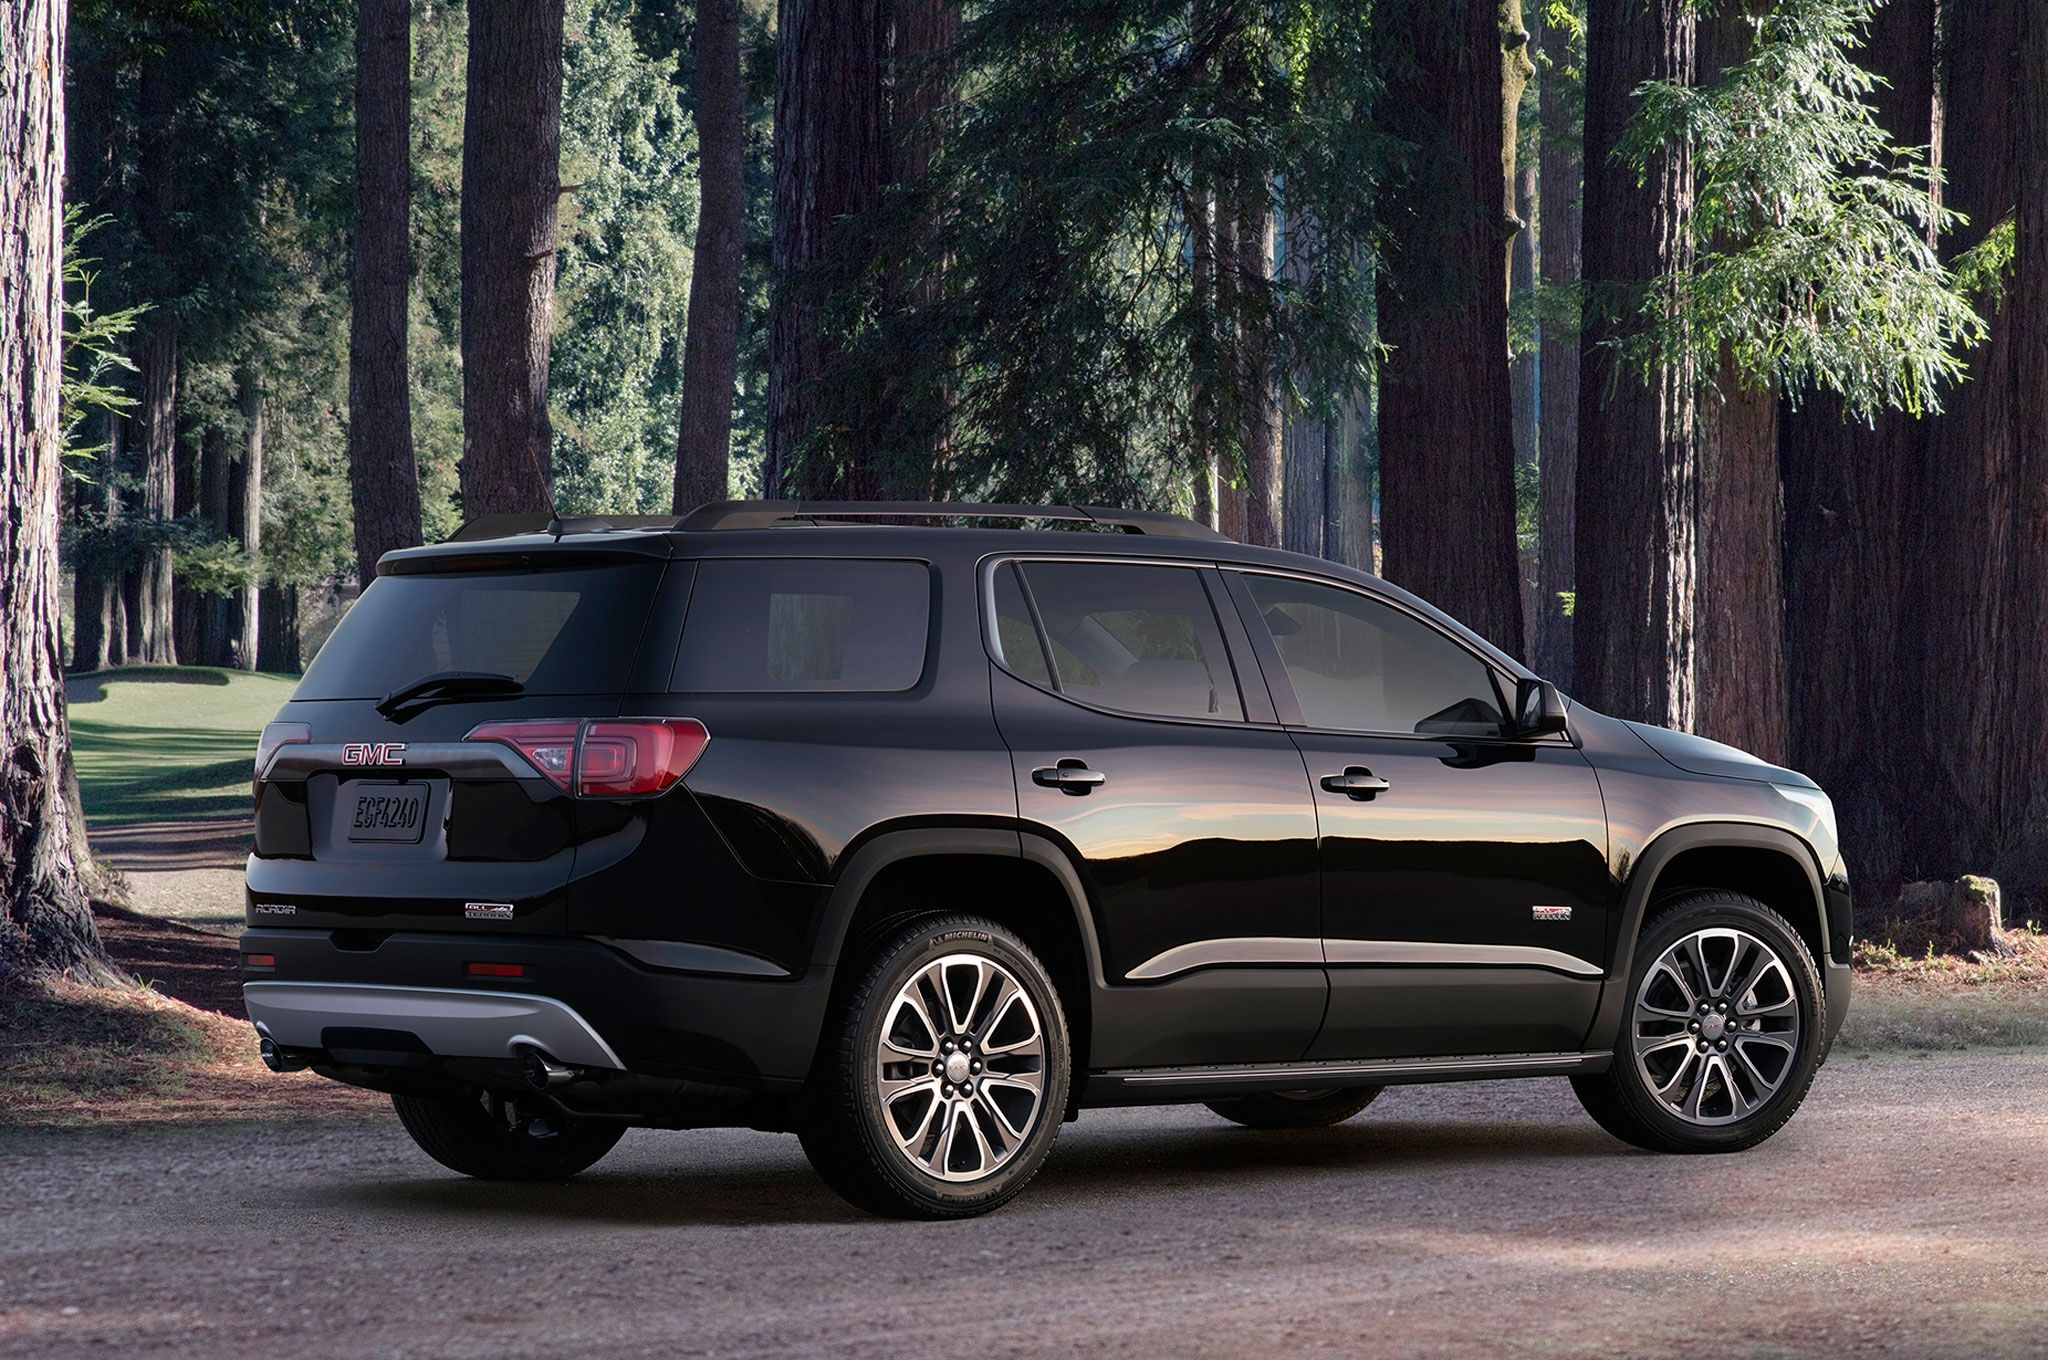 2018 gmc acadia all terain diesel news future cars pictures pinterest news